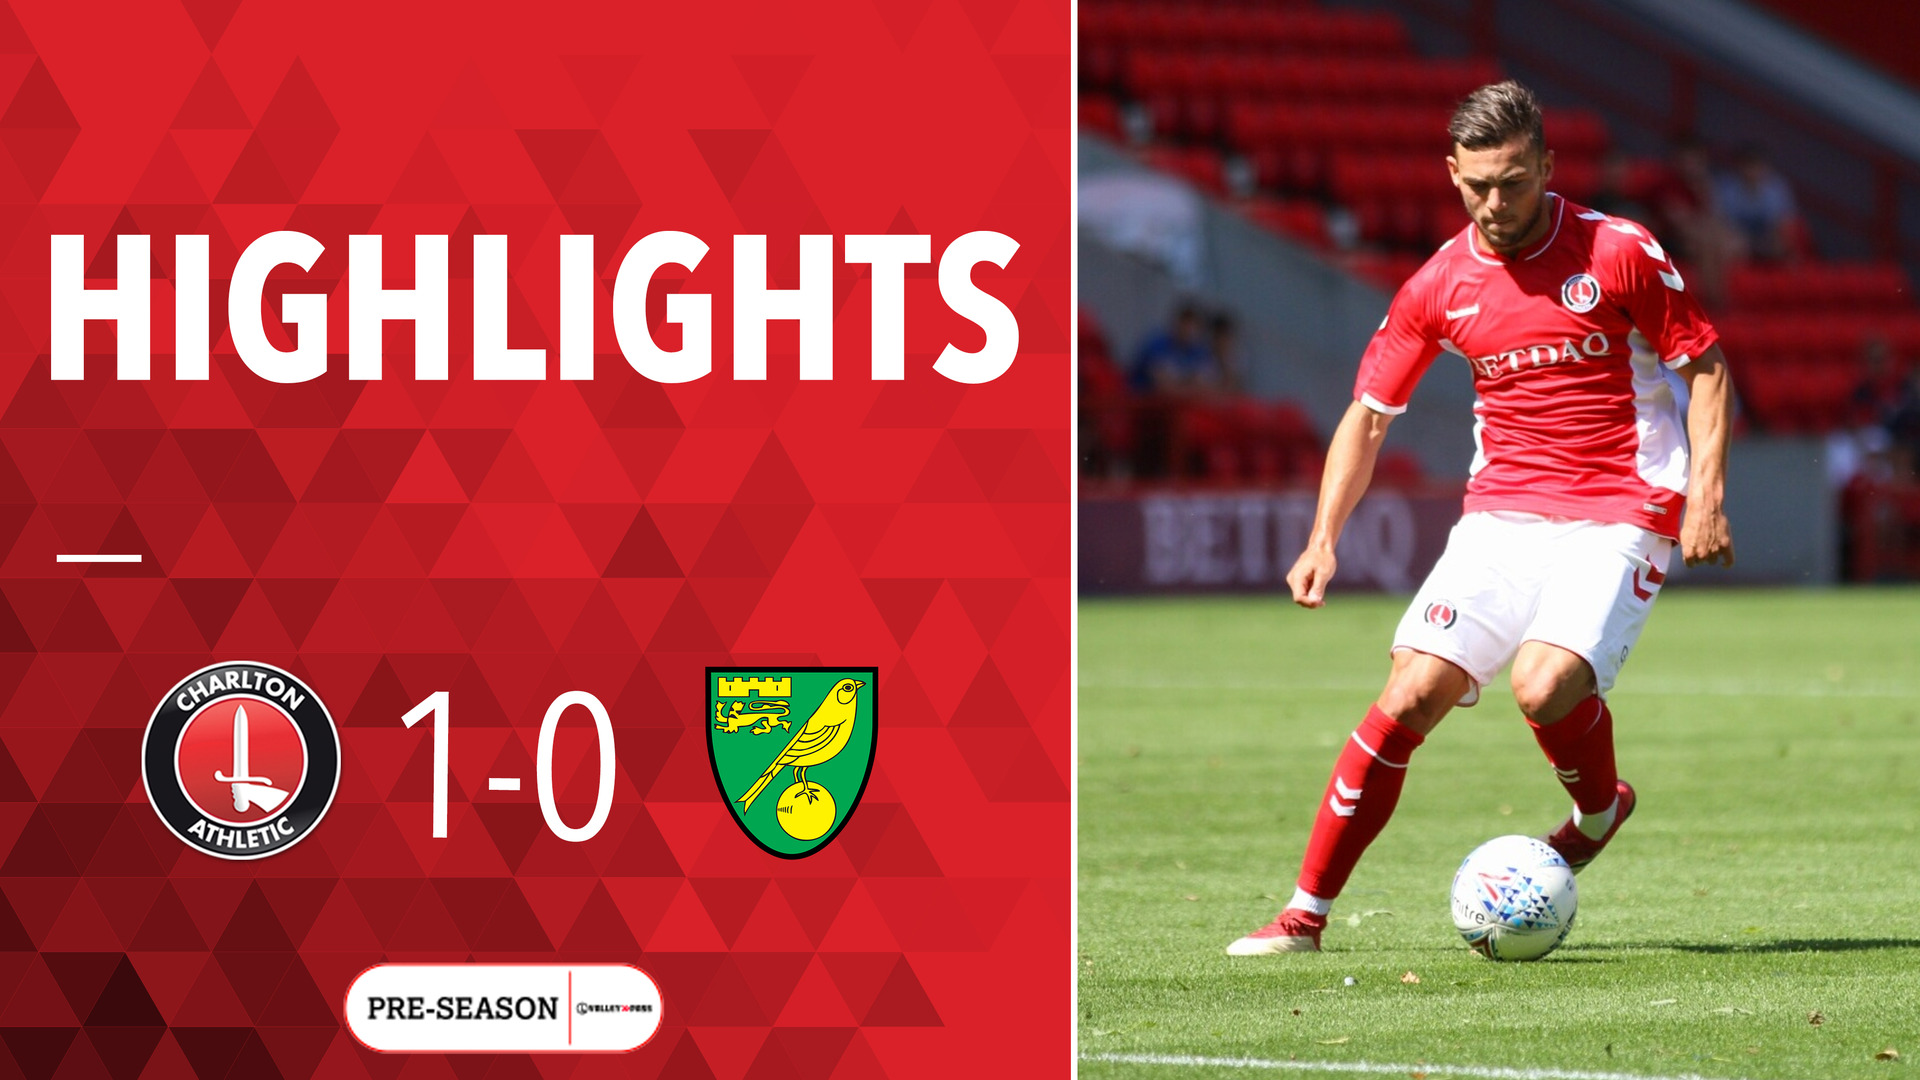 HIGHLIGHTS | Charlton 1 Norwich City 0 (Pre-season July 2018)